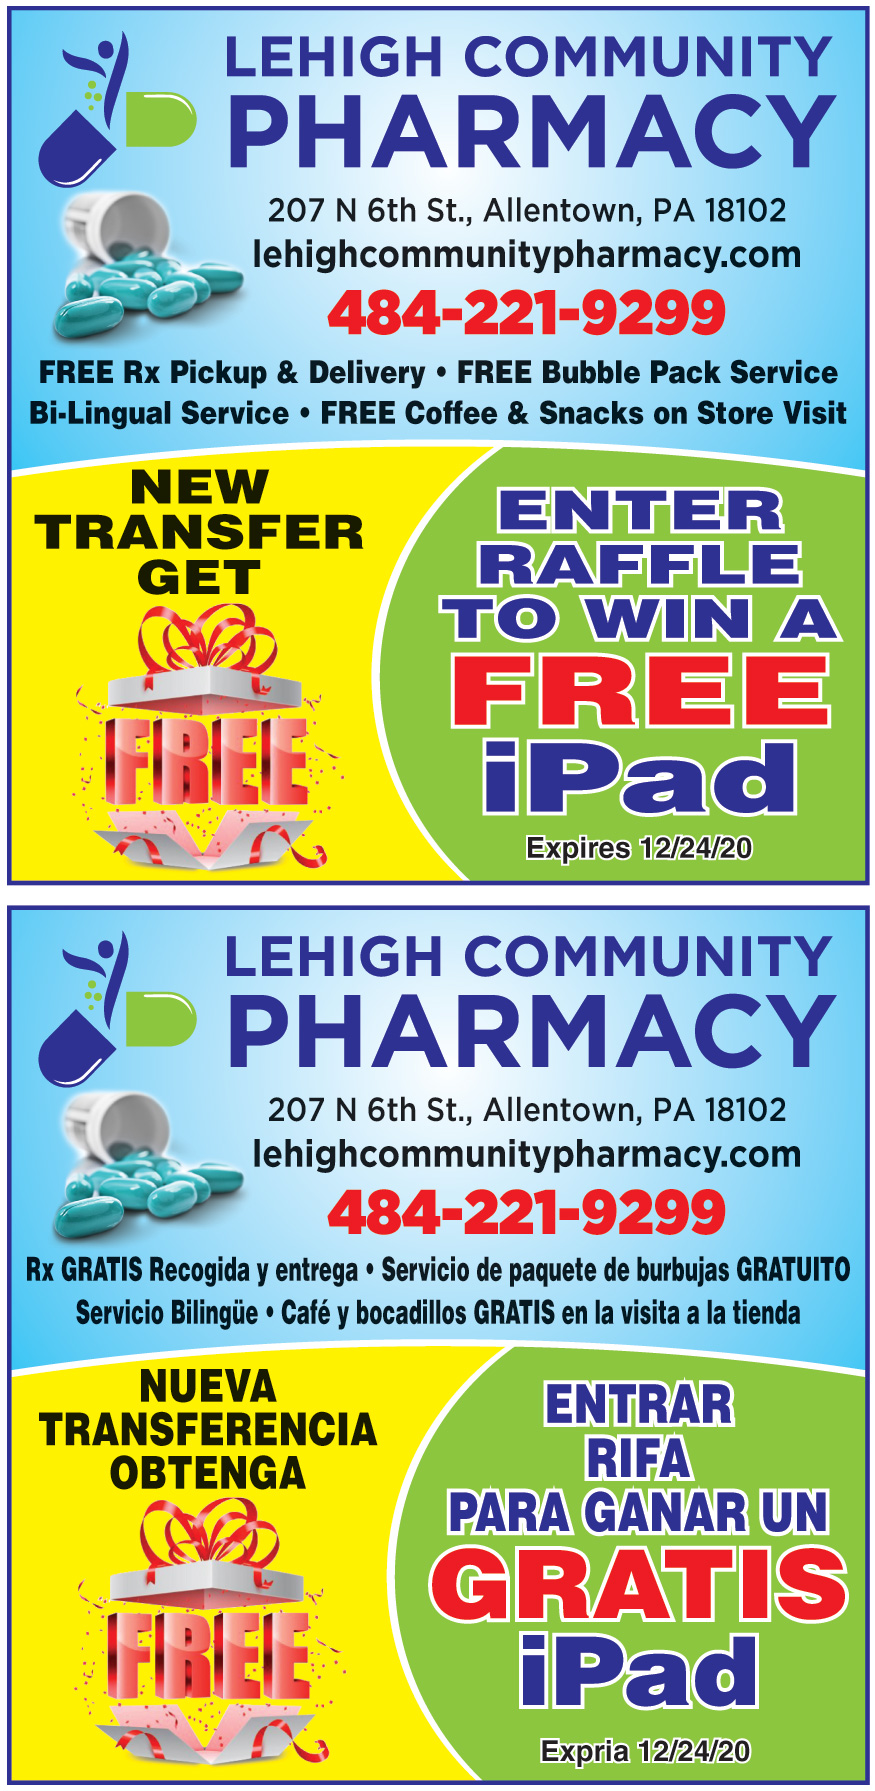 BETHLEHEM PHARMACY RX INC